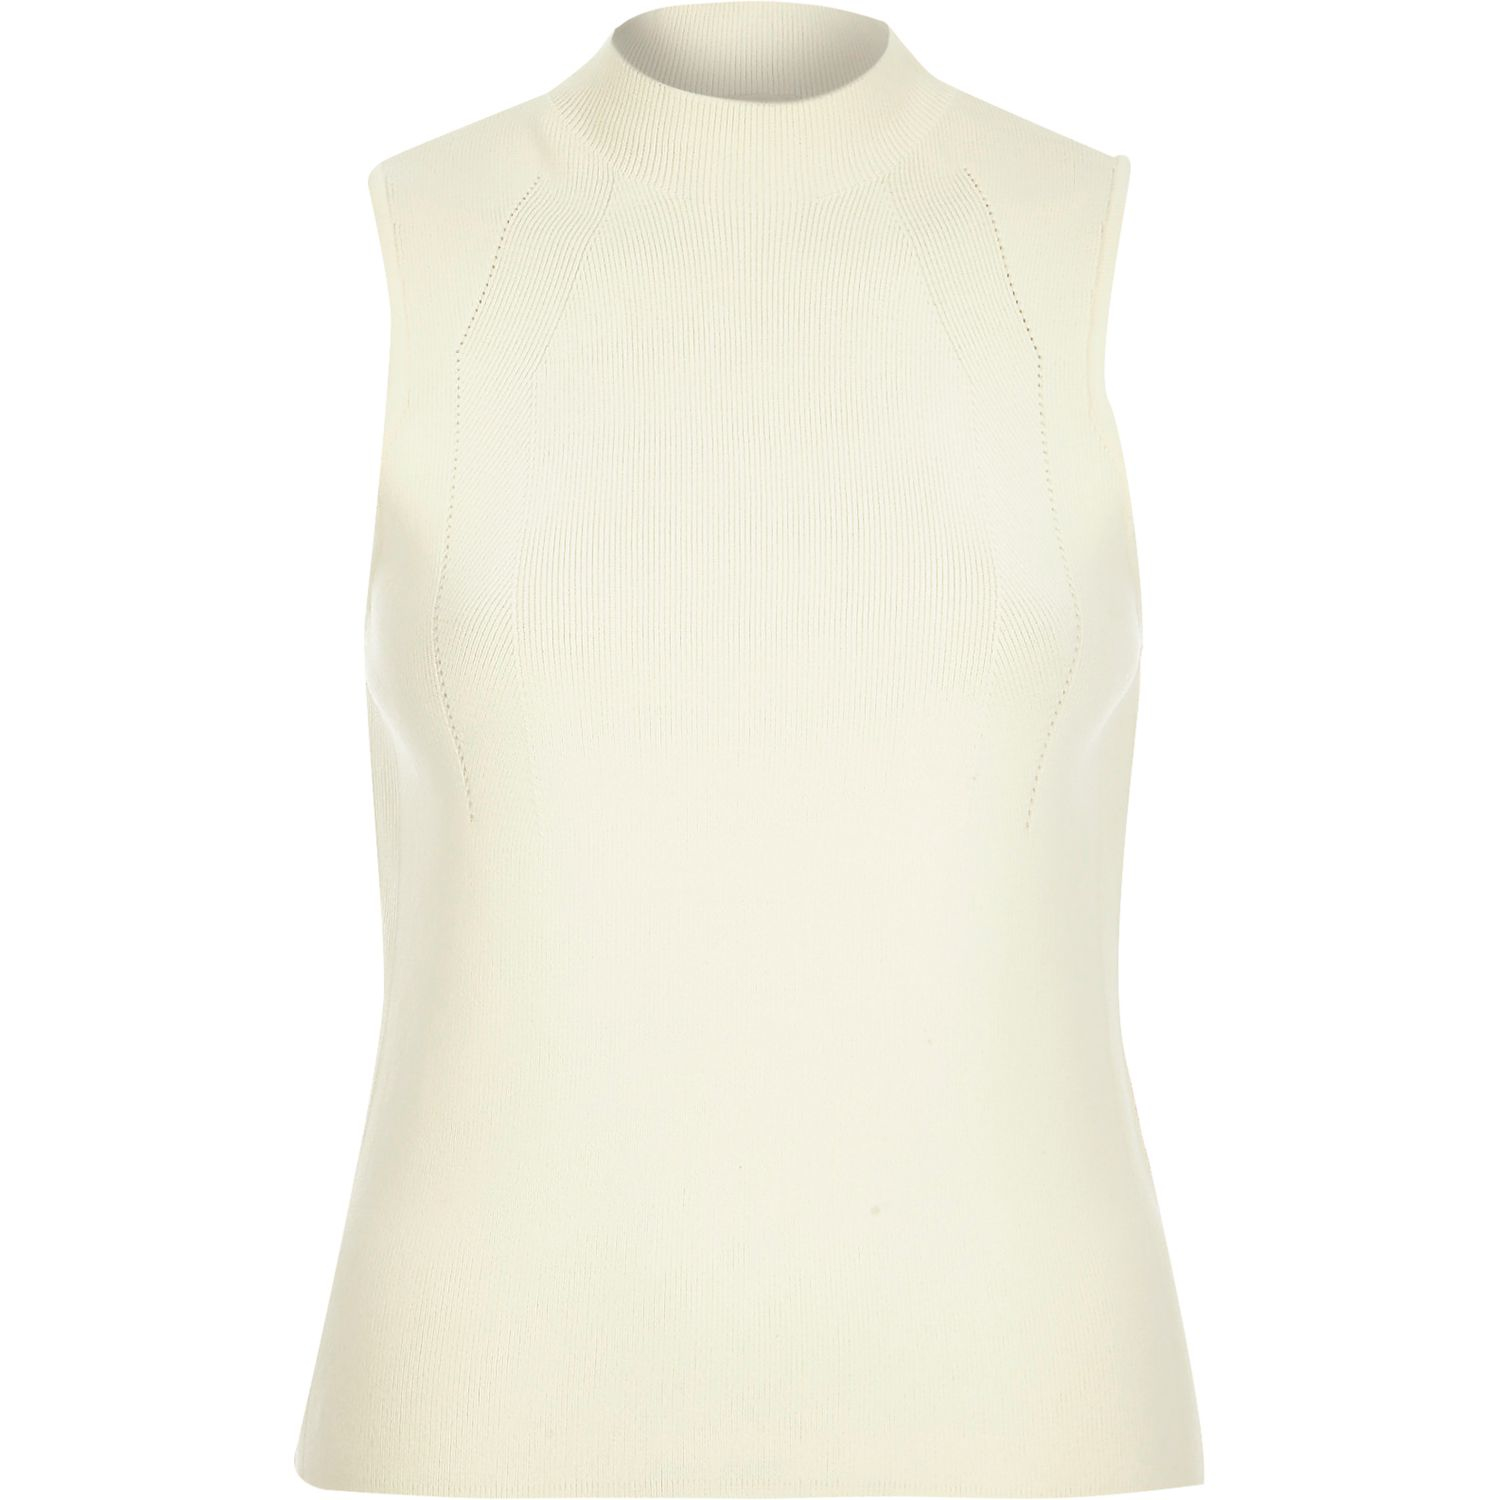 2a0acfdf4d1139 River Island Cream Knitted High Neck Sleeveless Top in Natural - Lyst